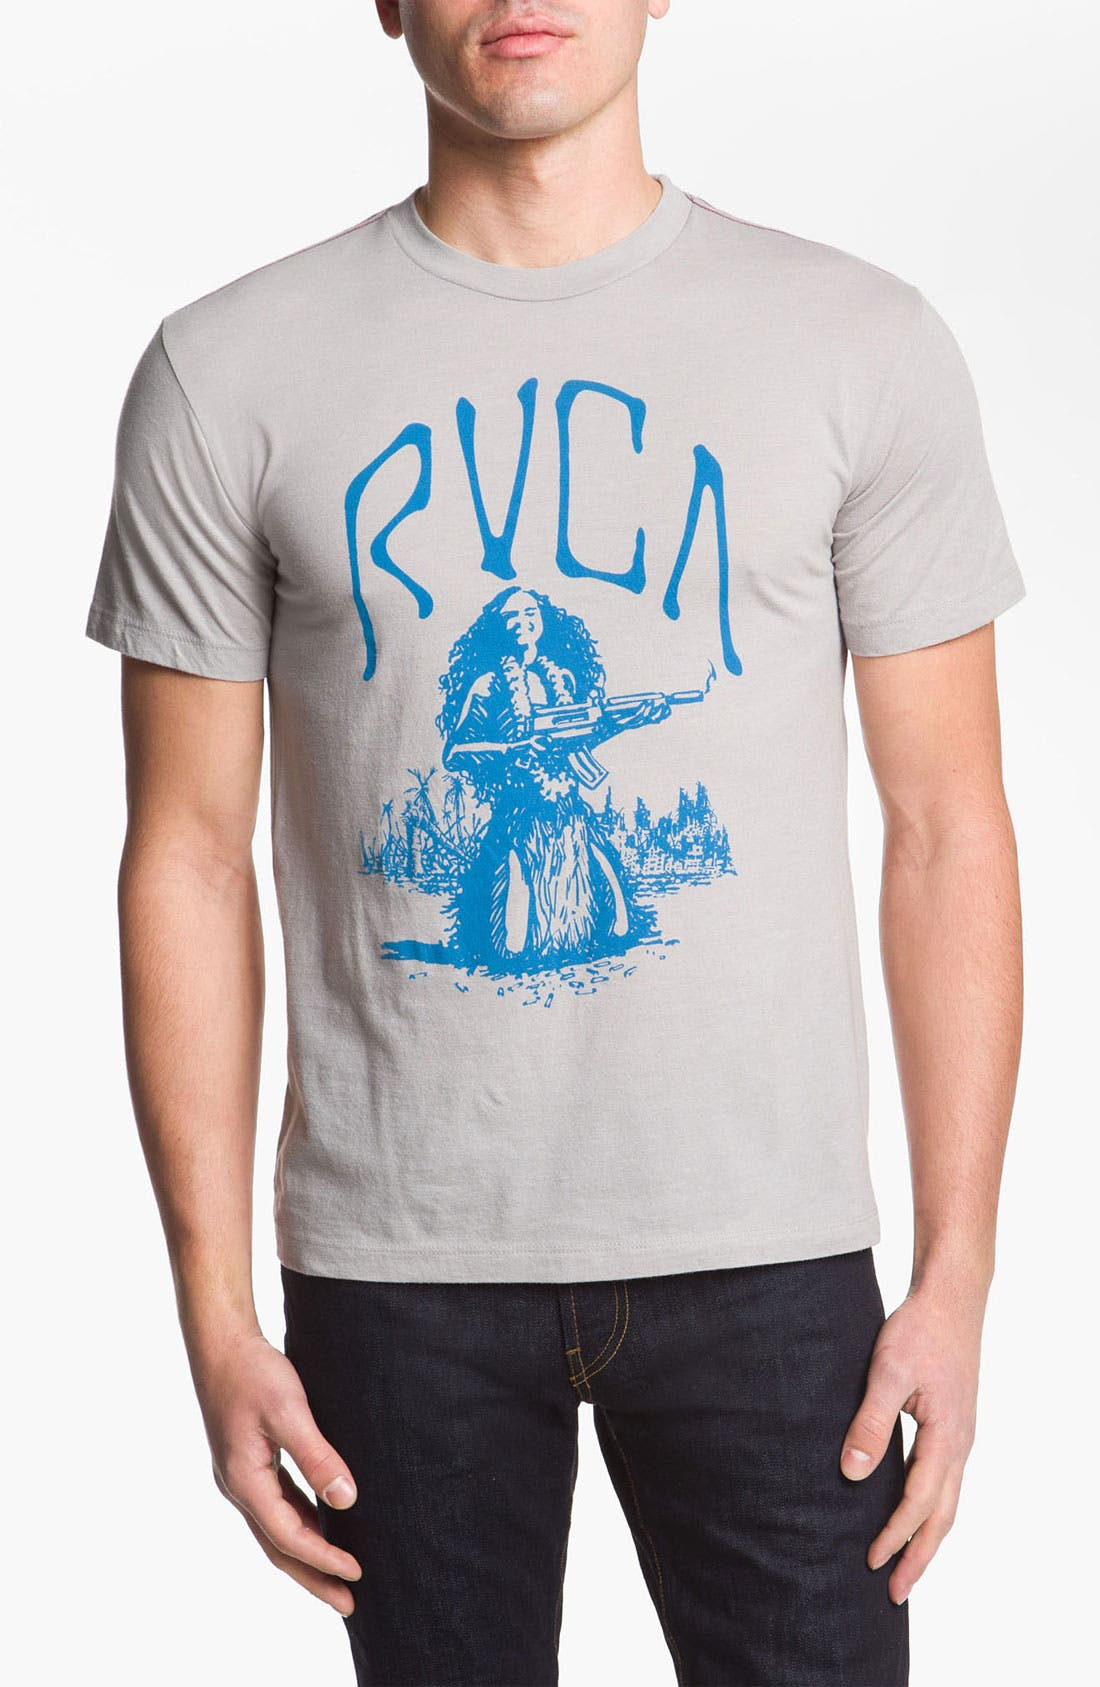 Alternate Image 1 Selected - RVCA 'Shooting Hula' Graphic T-Shirt